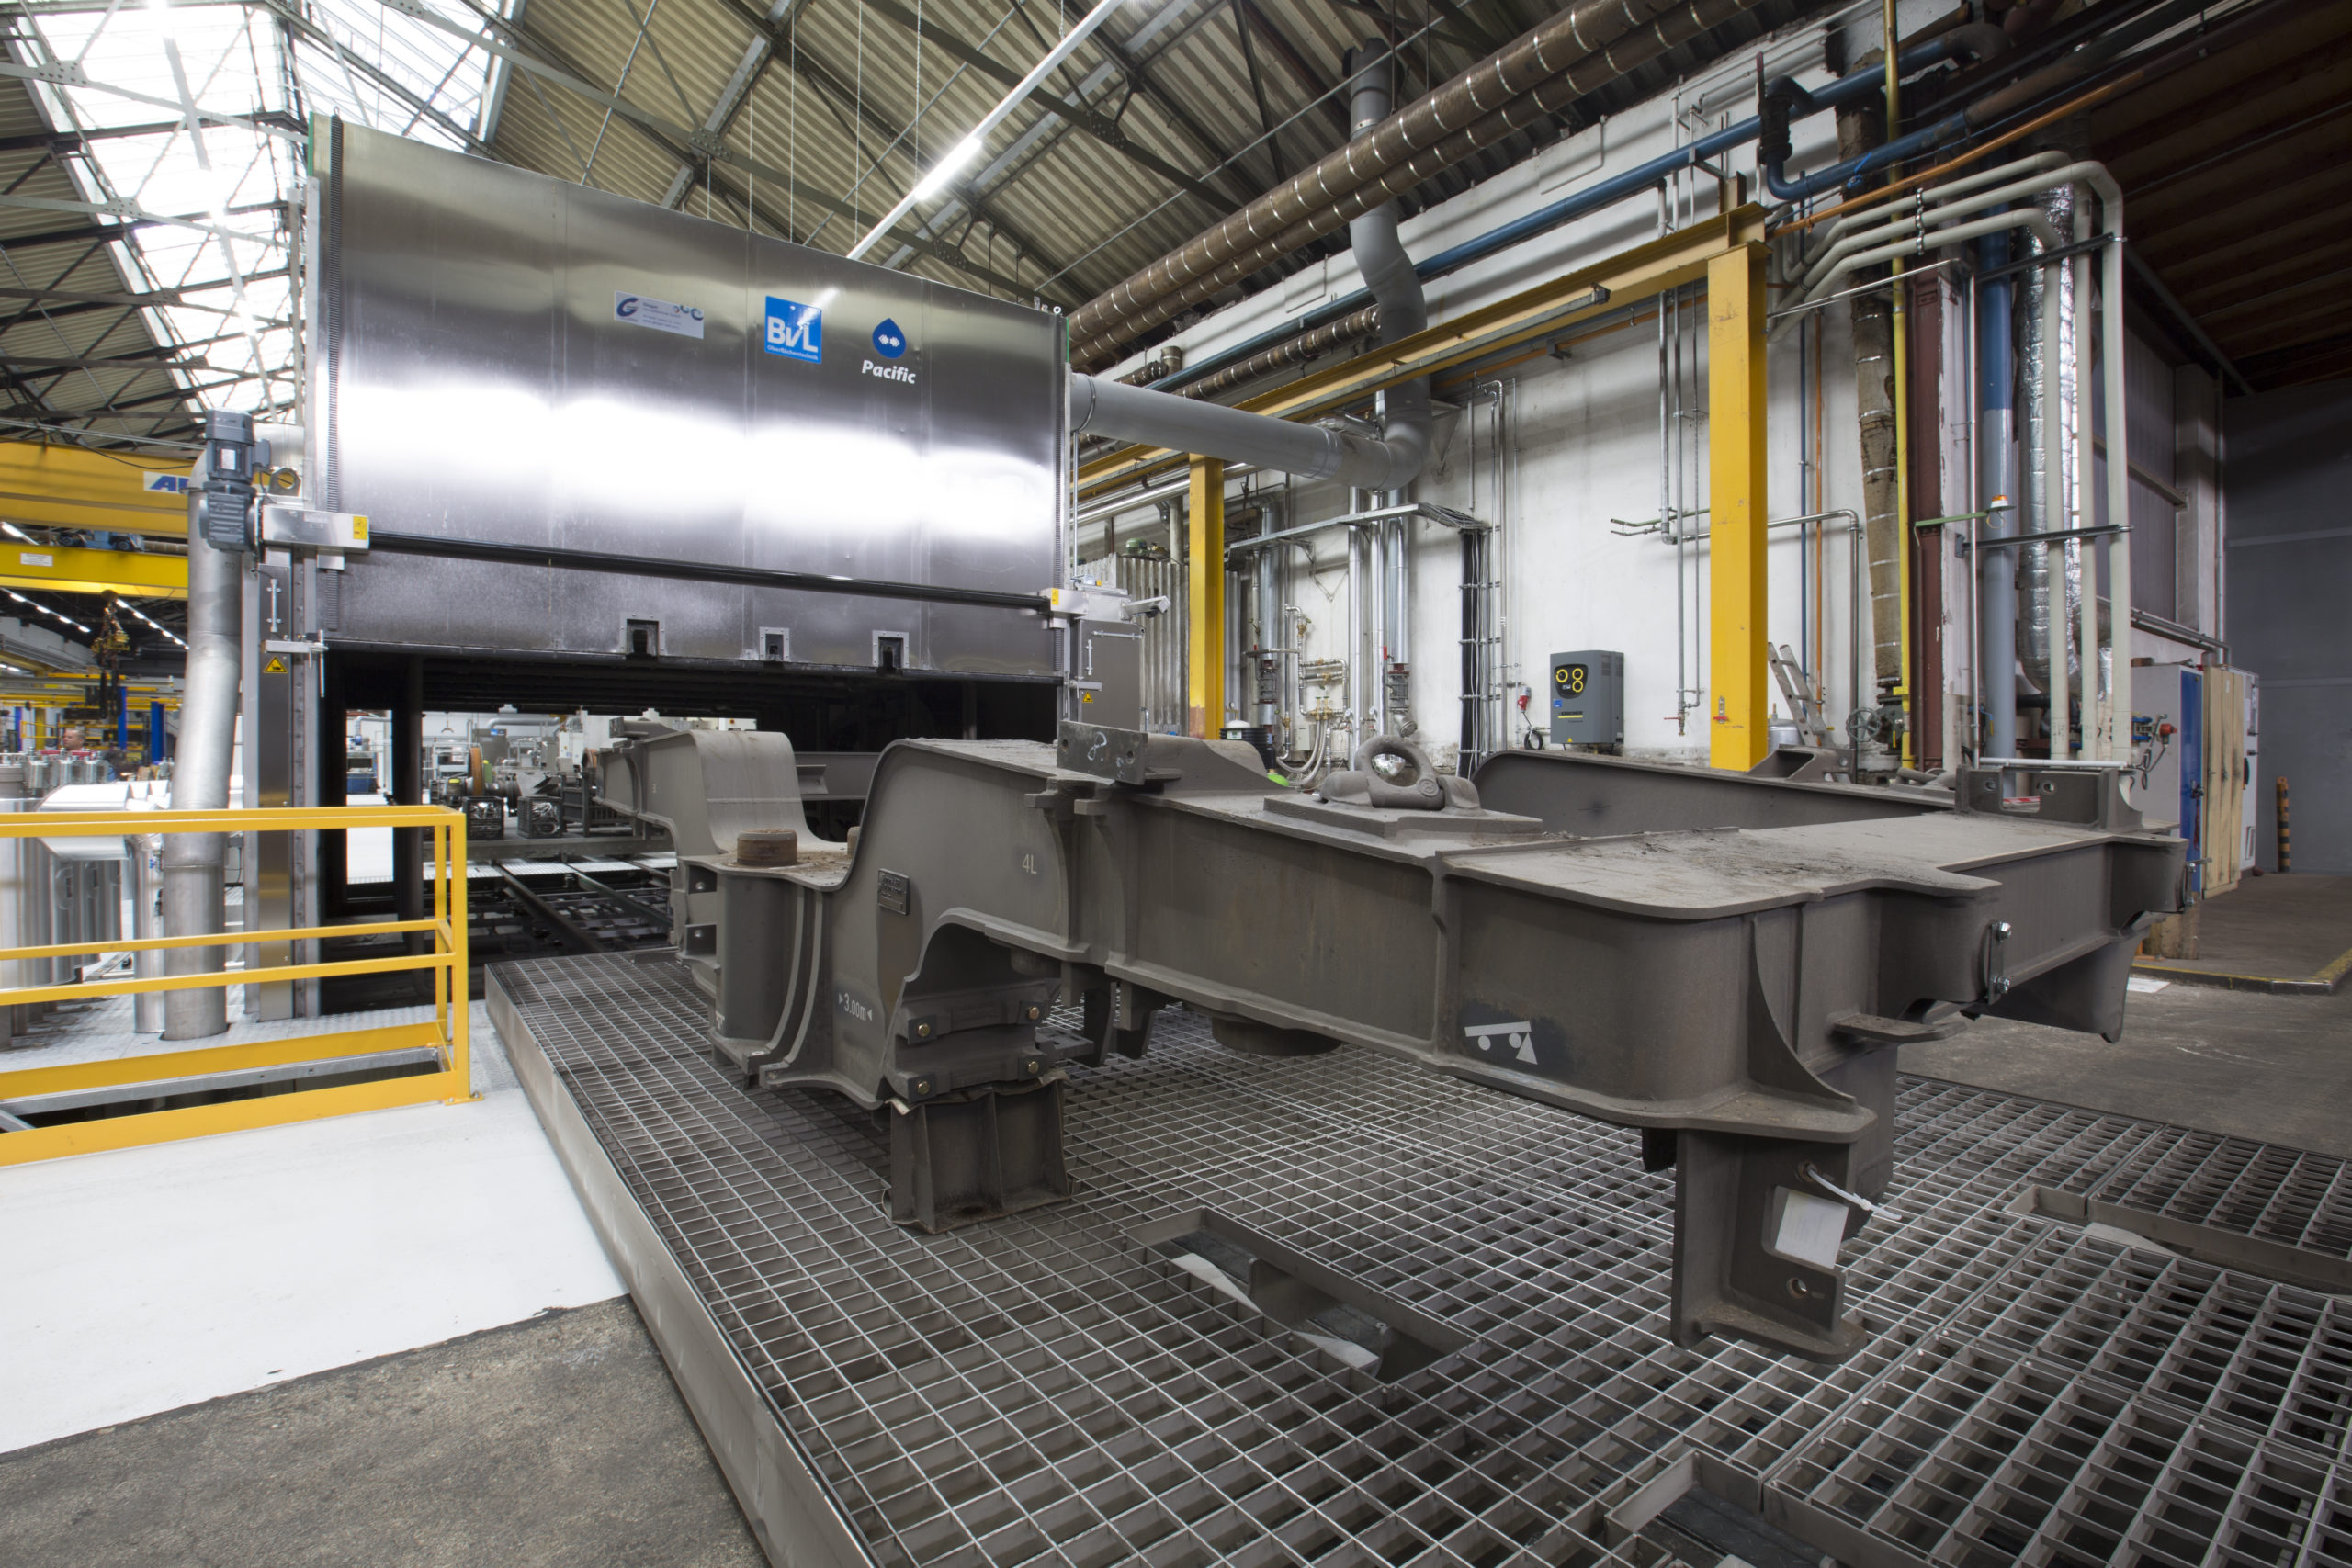 Cleaning system PacificTA ensures reliable cleanliness for heavy bogies and allows loading from both sides